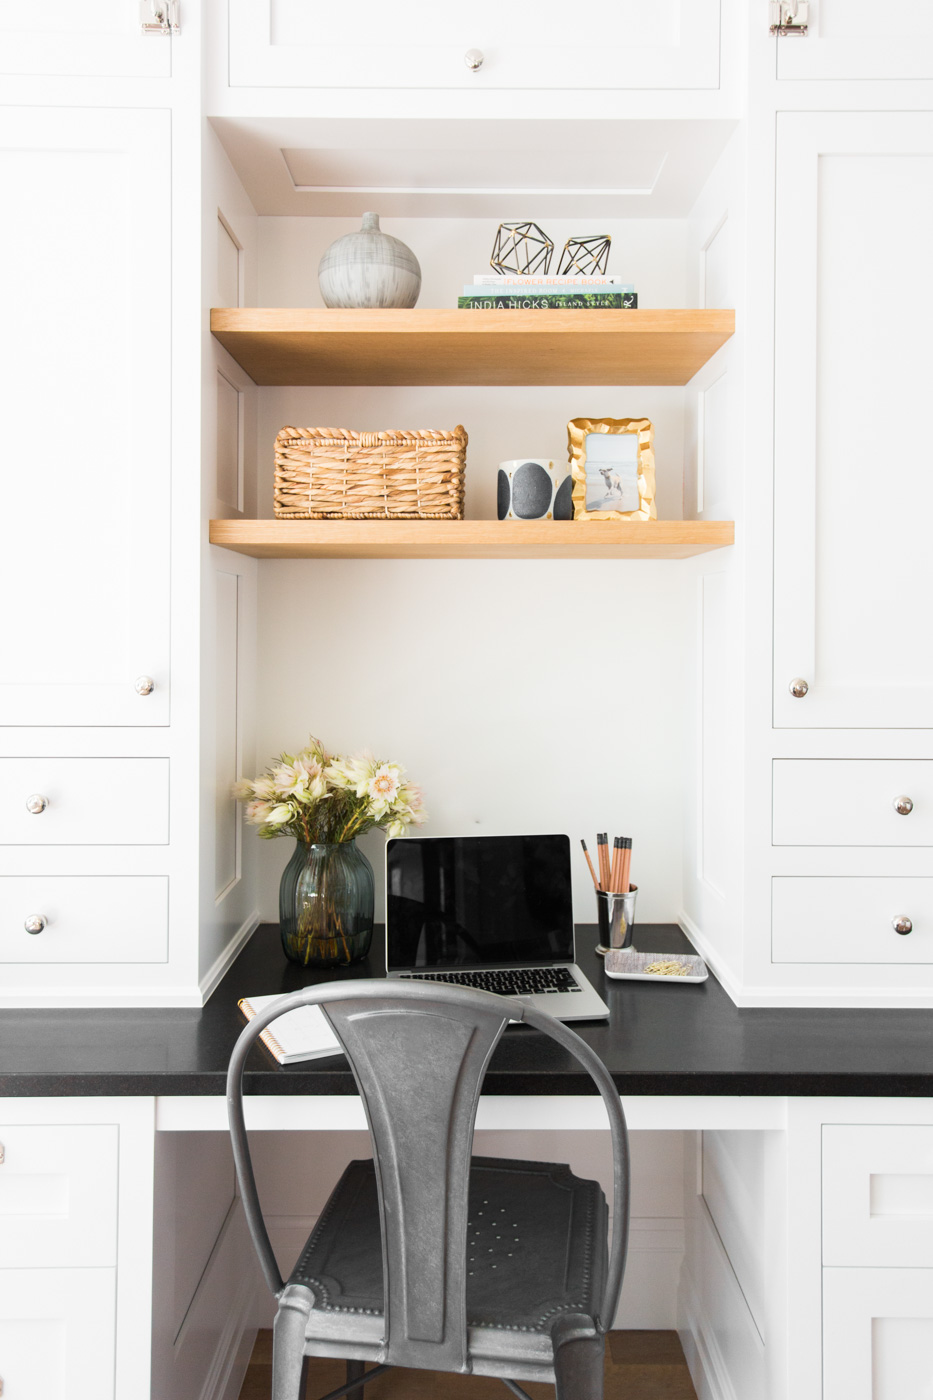 Built-in workstation in the kitchen || Studio McGee